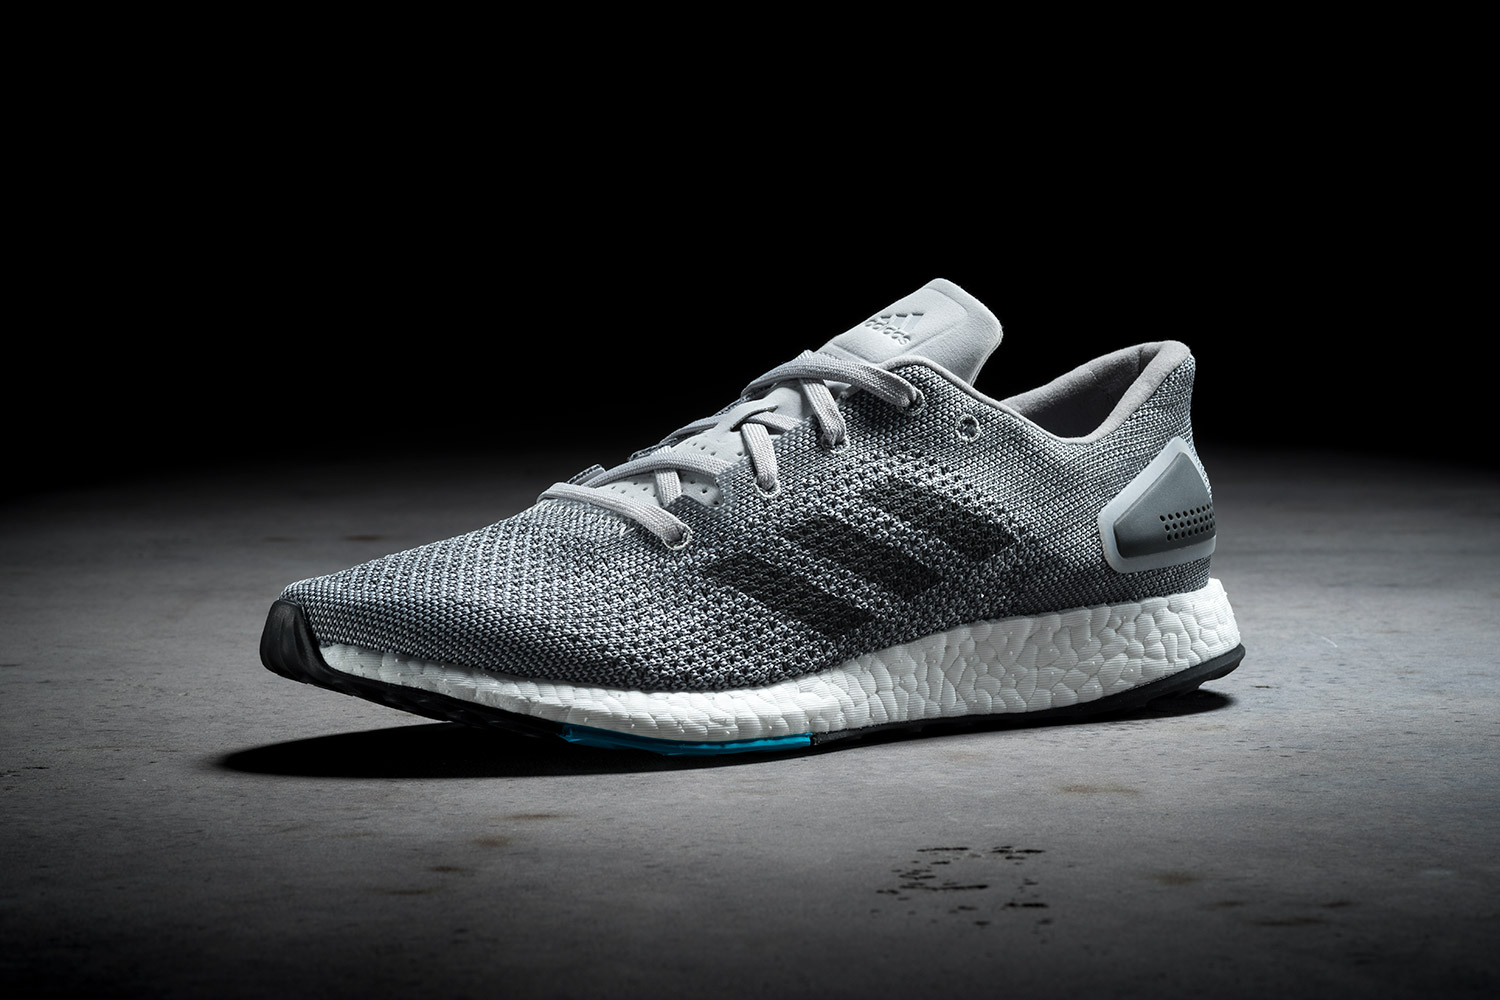 The Redesigned adidas PureBOOST DPR for Street Runners Gets A Release Date 61575748c